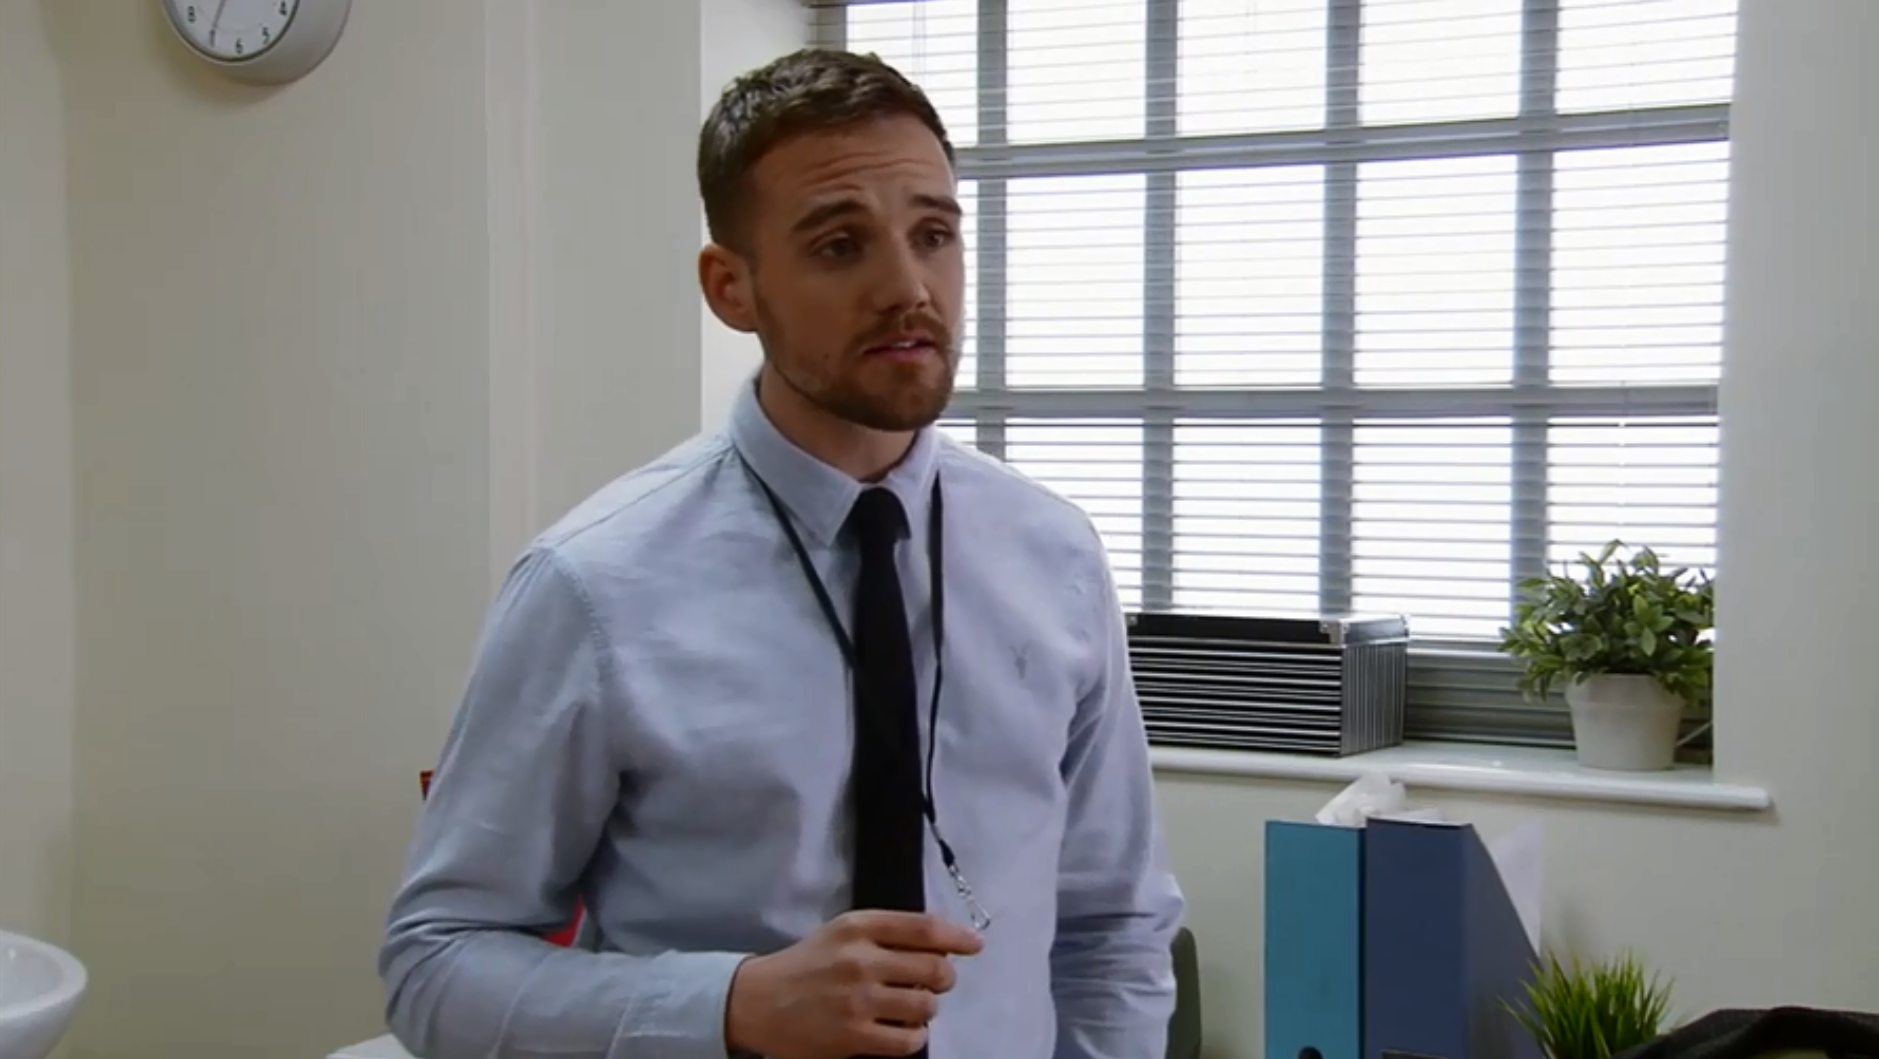 Coronation Street's Ali Neeson arrives and reveals he hasn't spoken to mum Michelle Connor in YEARS